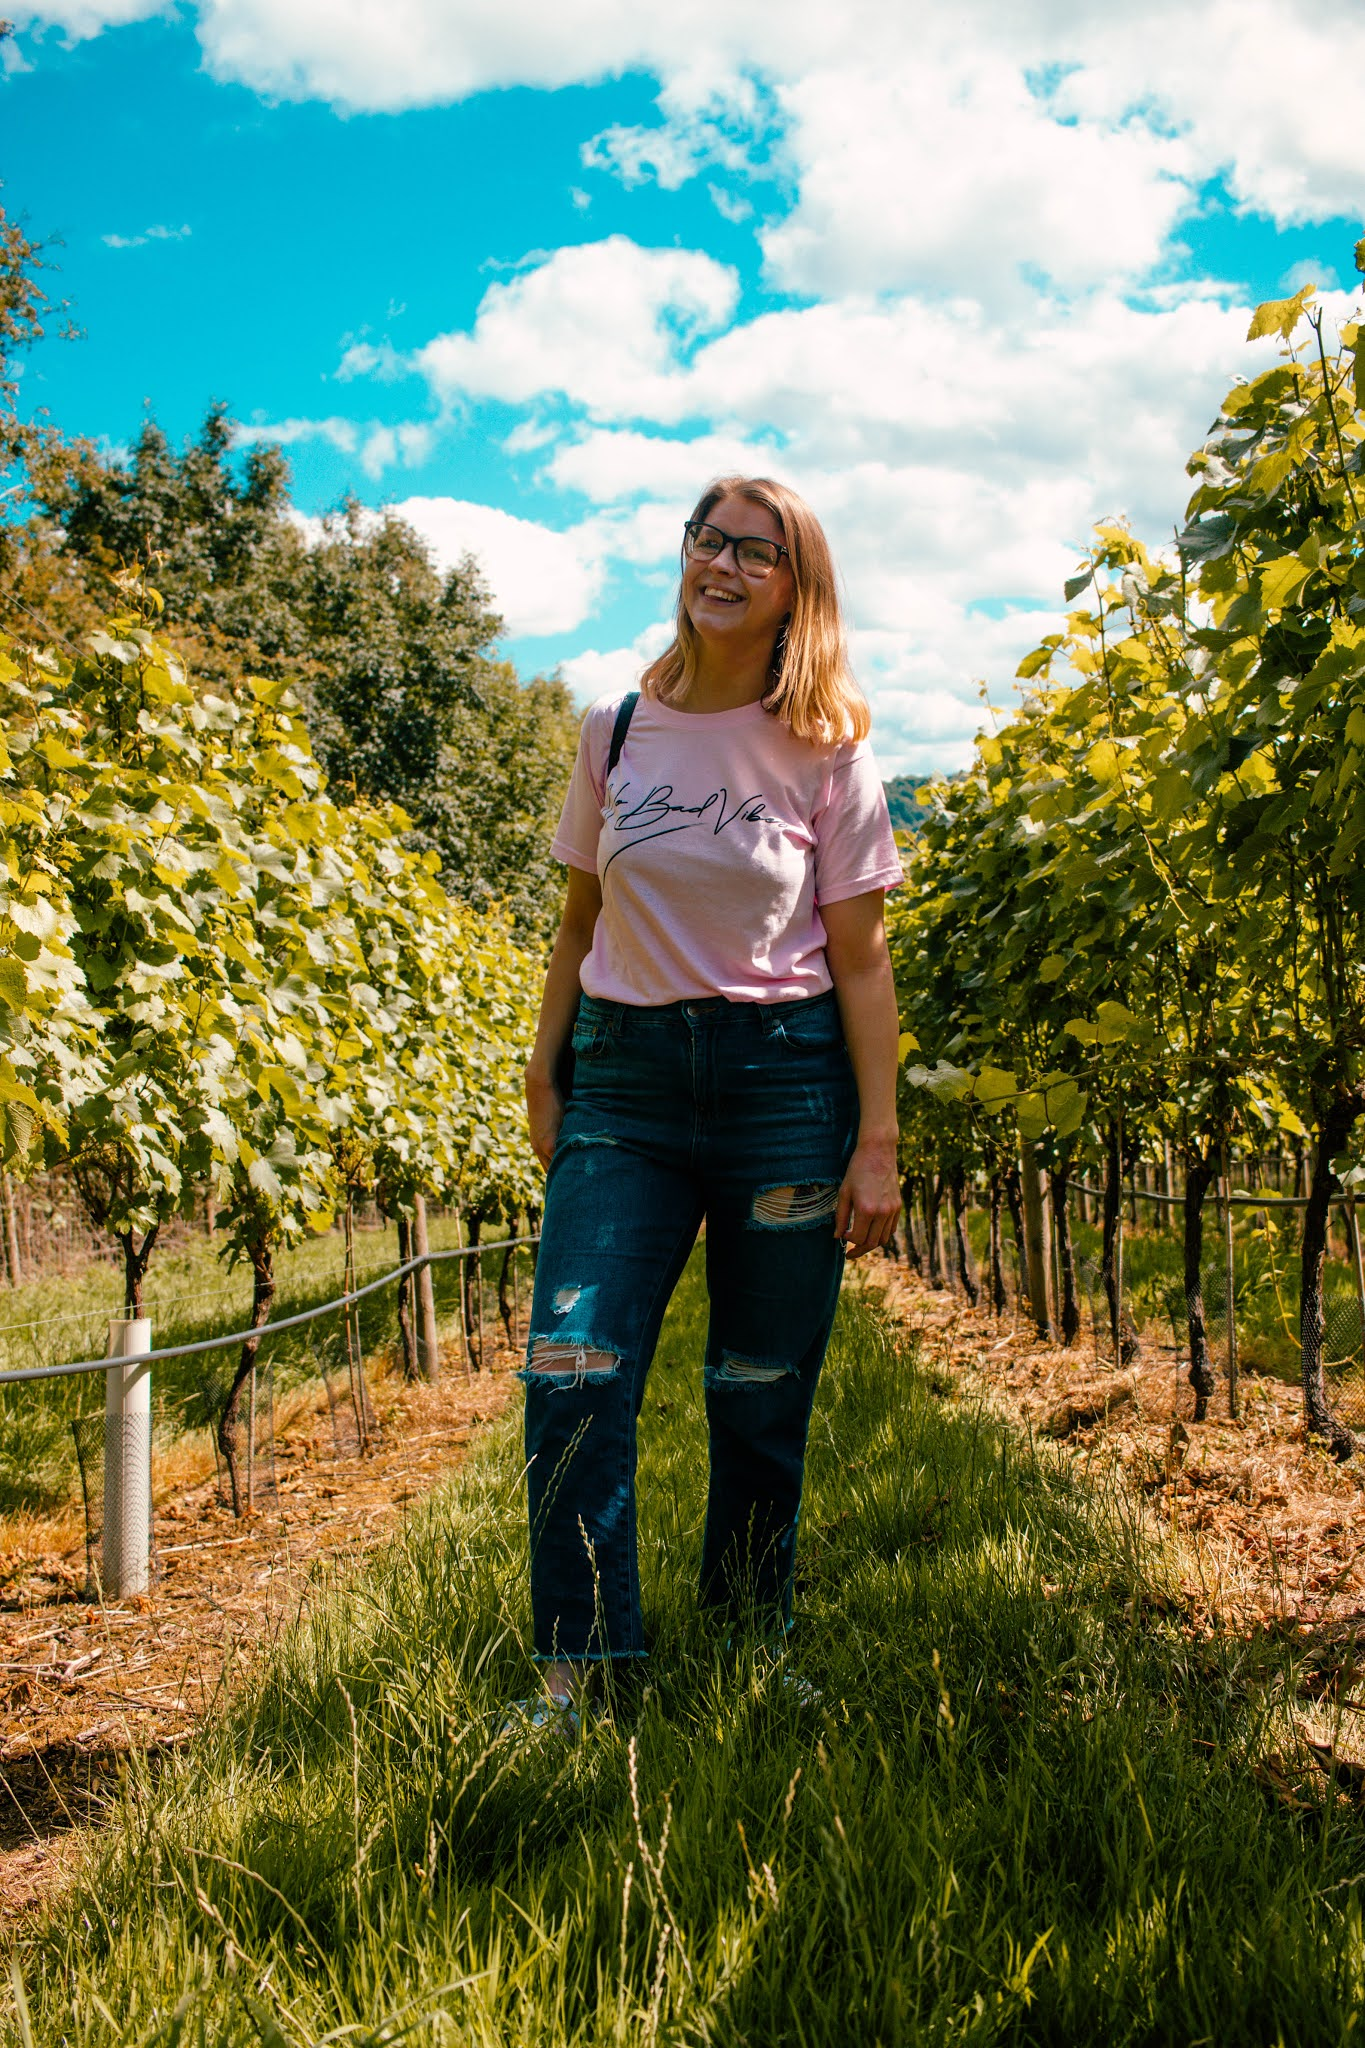 no bad vibes femme luxe tee - how to be a positive person - girl in vineyard